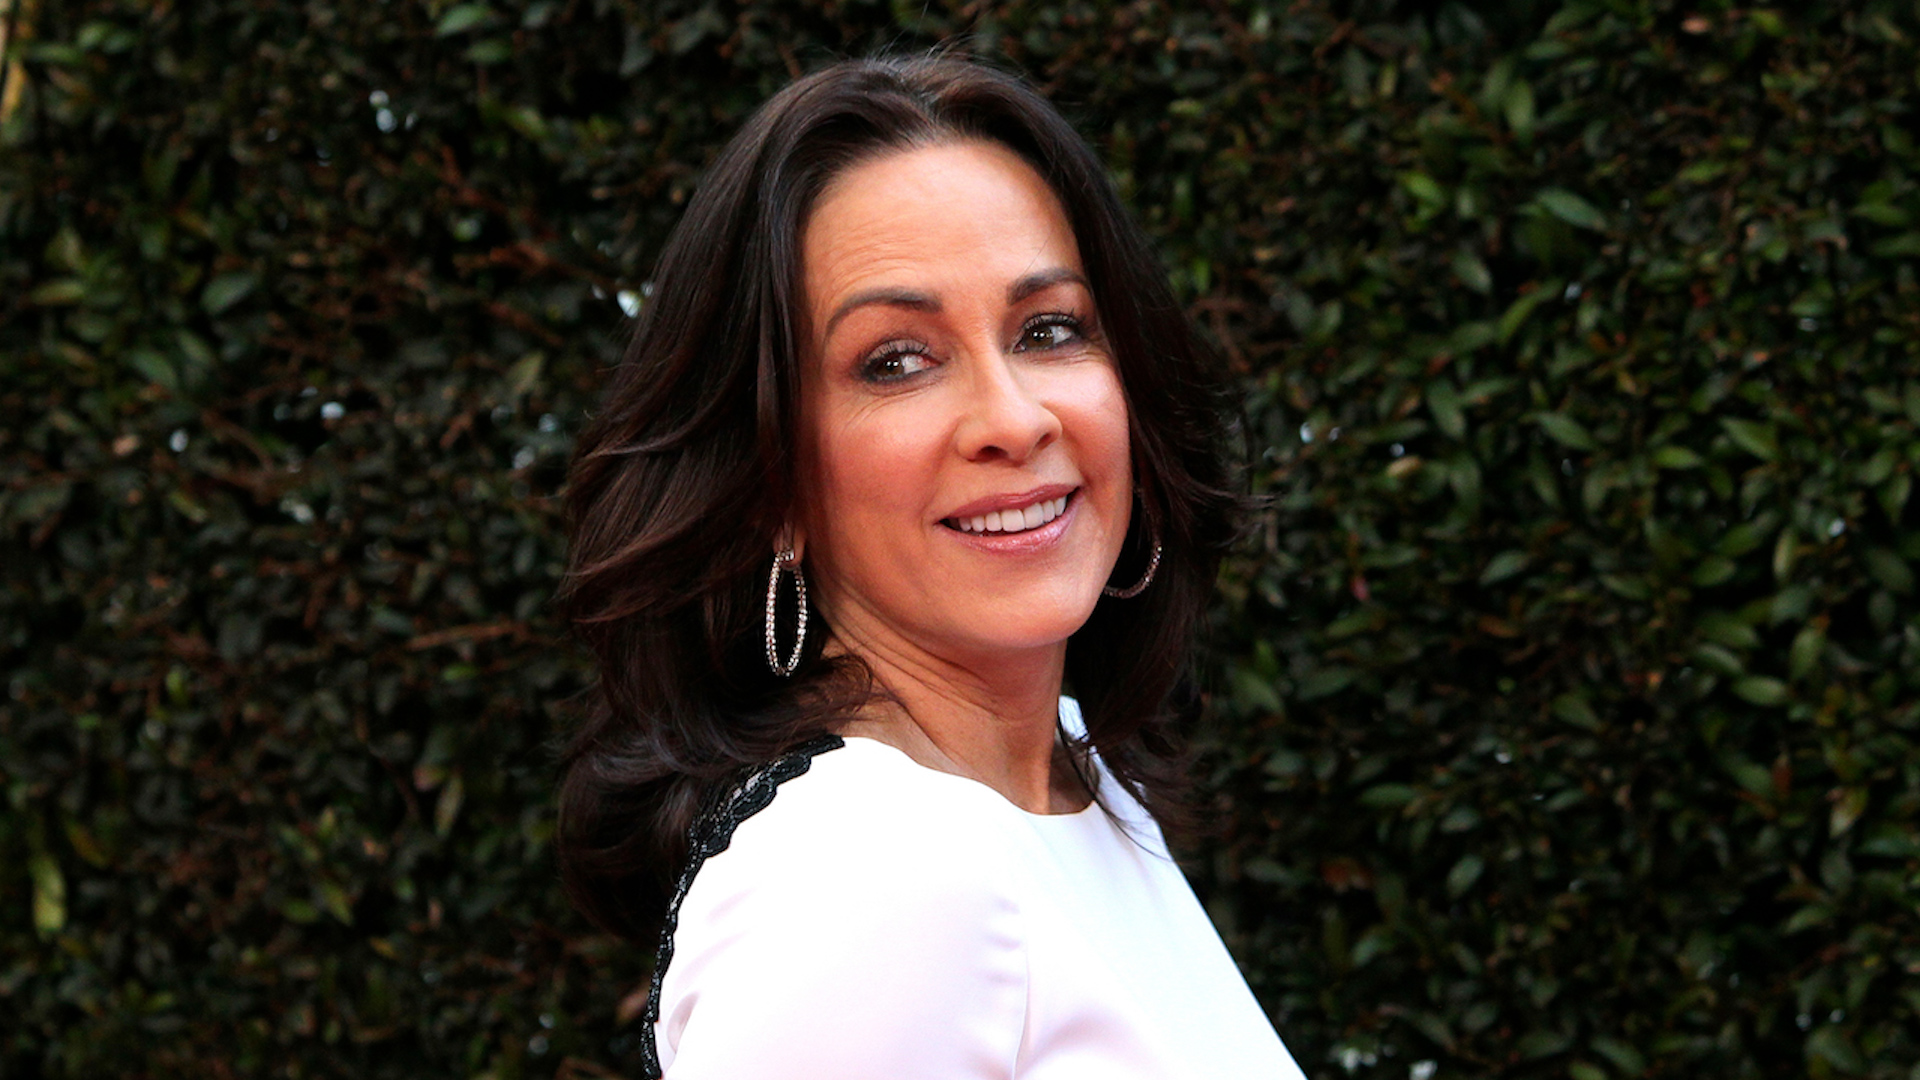 Patricia Heaton reveals why she decided to get sober